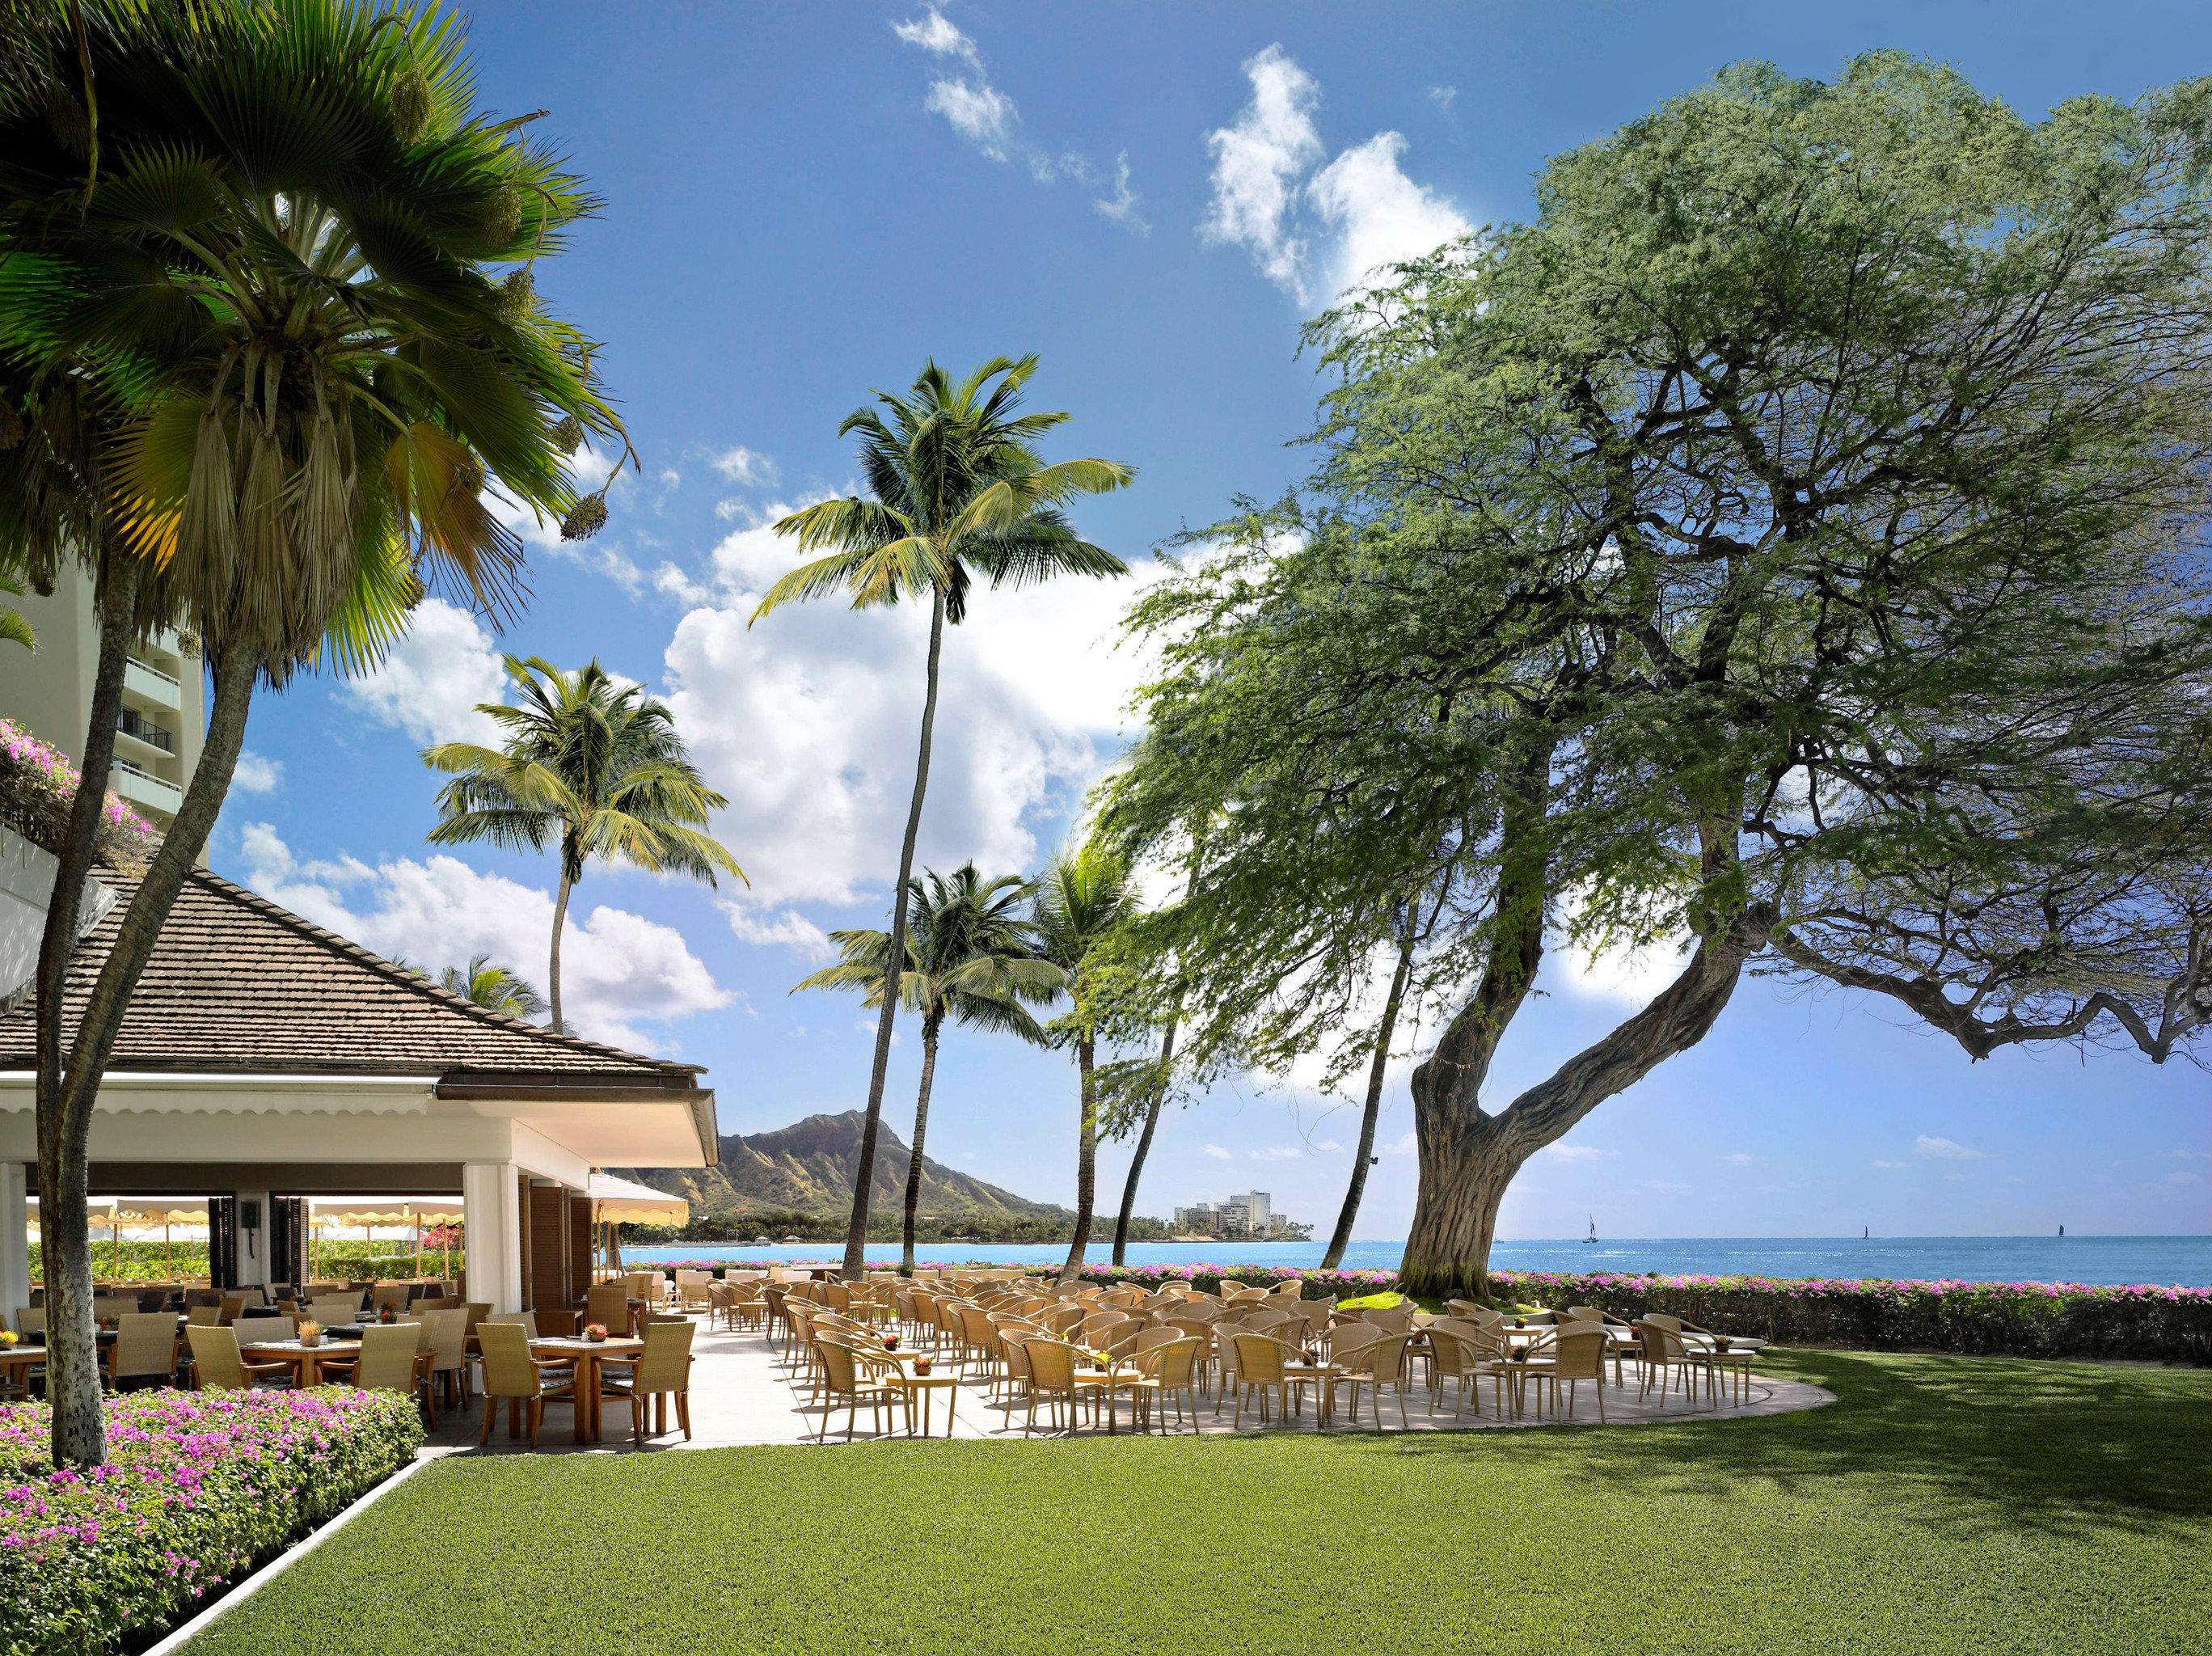 Architecture Beachfront Boutique Hotels Buildings Exterior Hawaii Honolulu Hotels Luxury Resort Scenic views Trip Ideas tree sky grass property plant arecales home woody plant residential area park Beach palm family caribbean flower lawn Villa palm